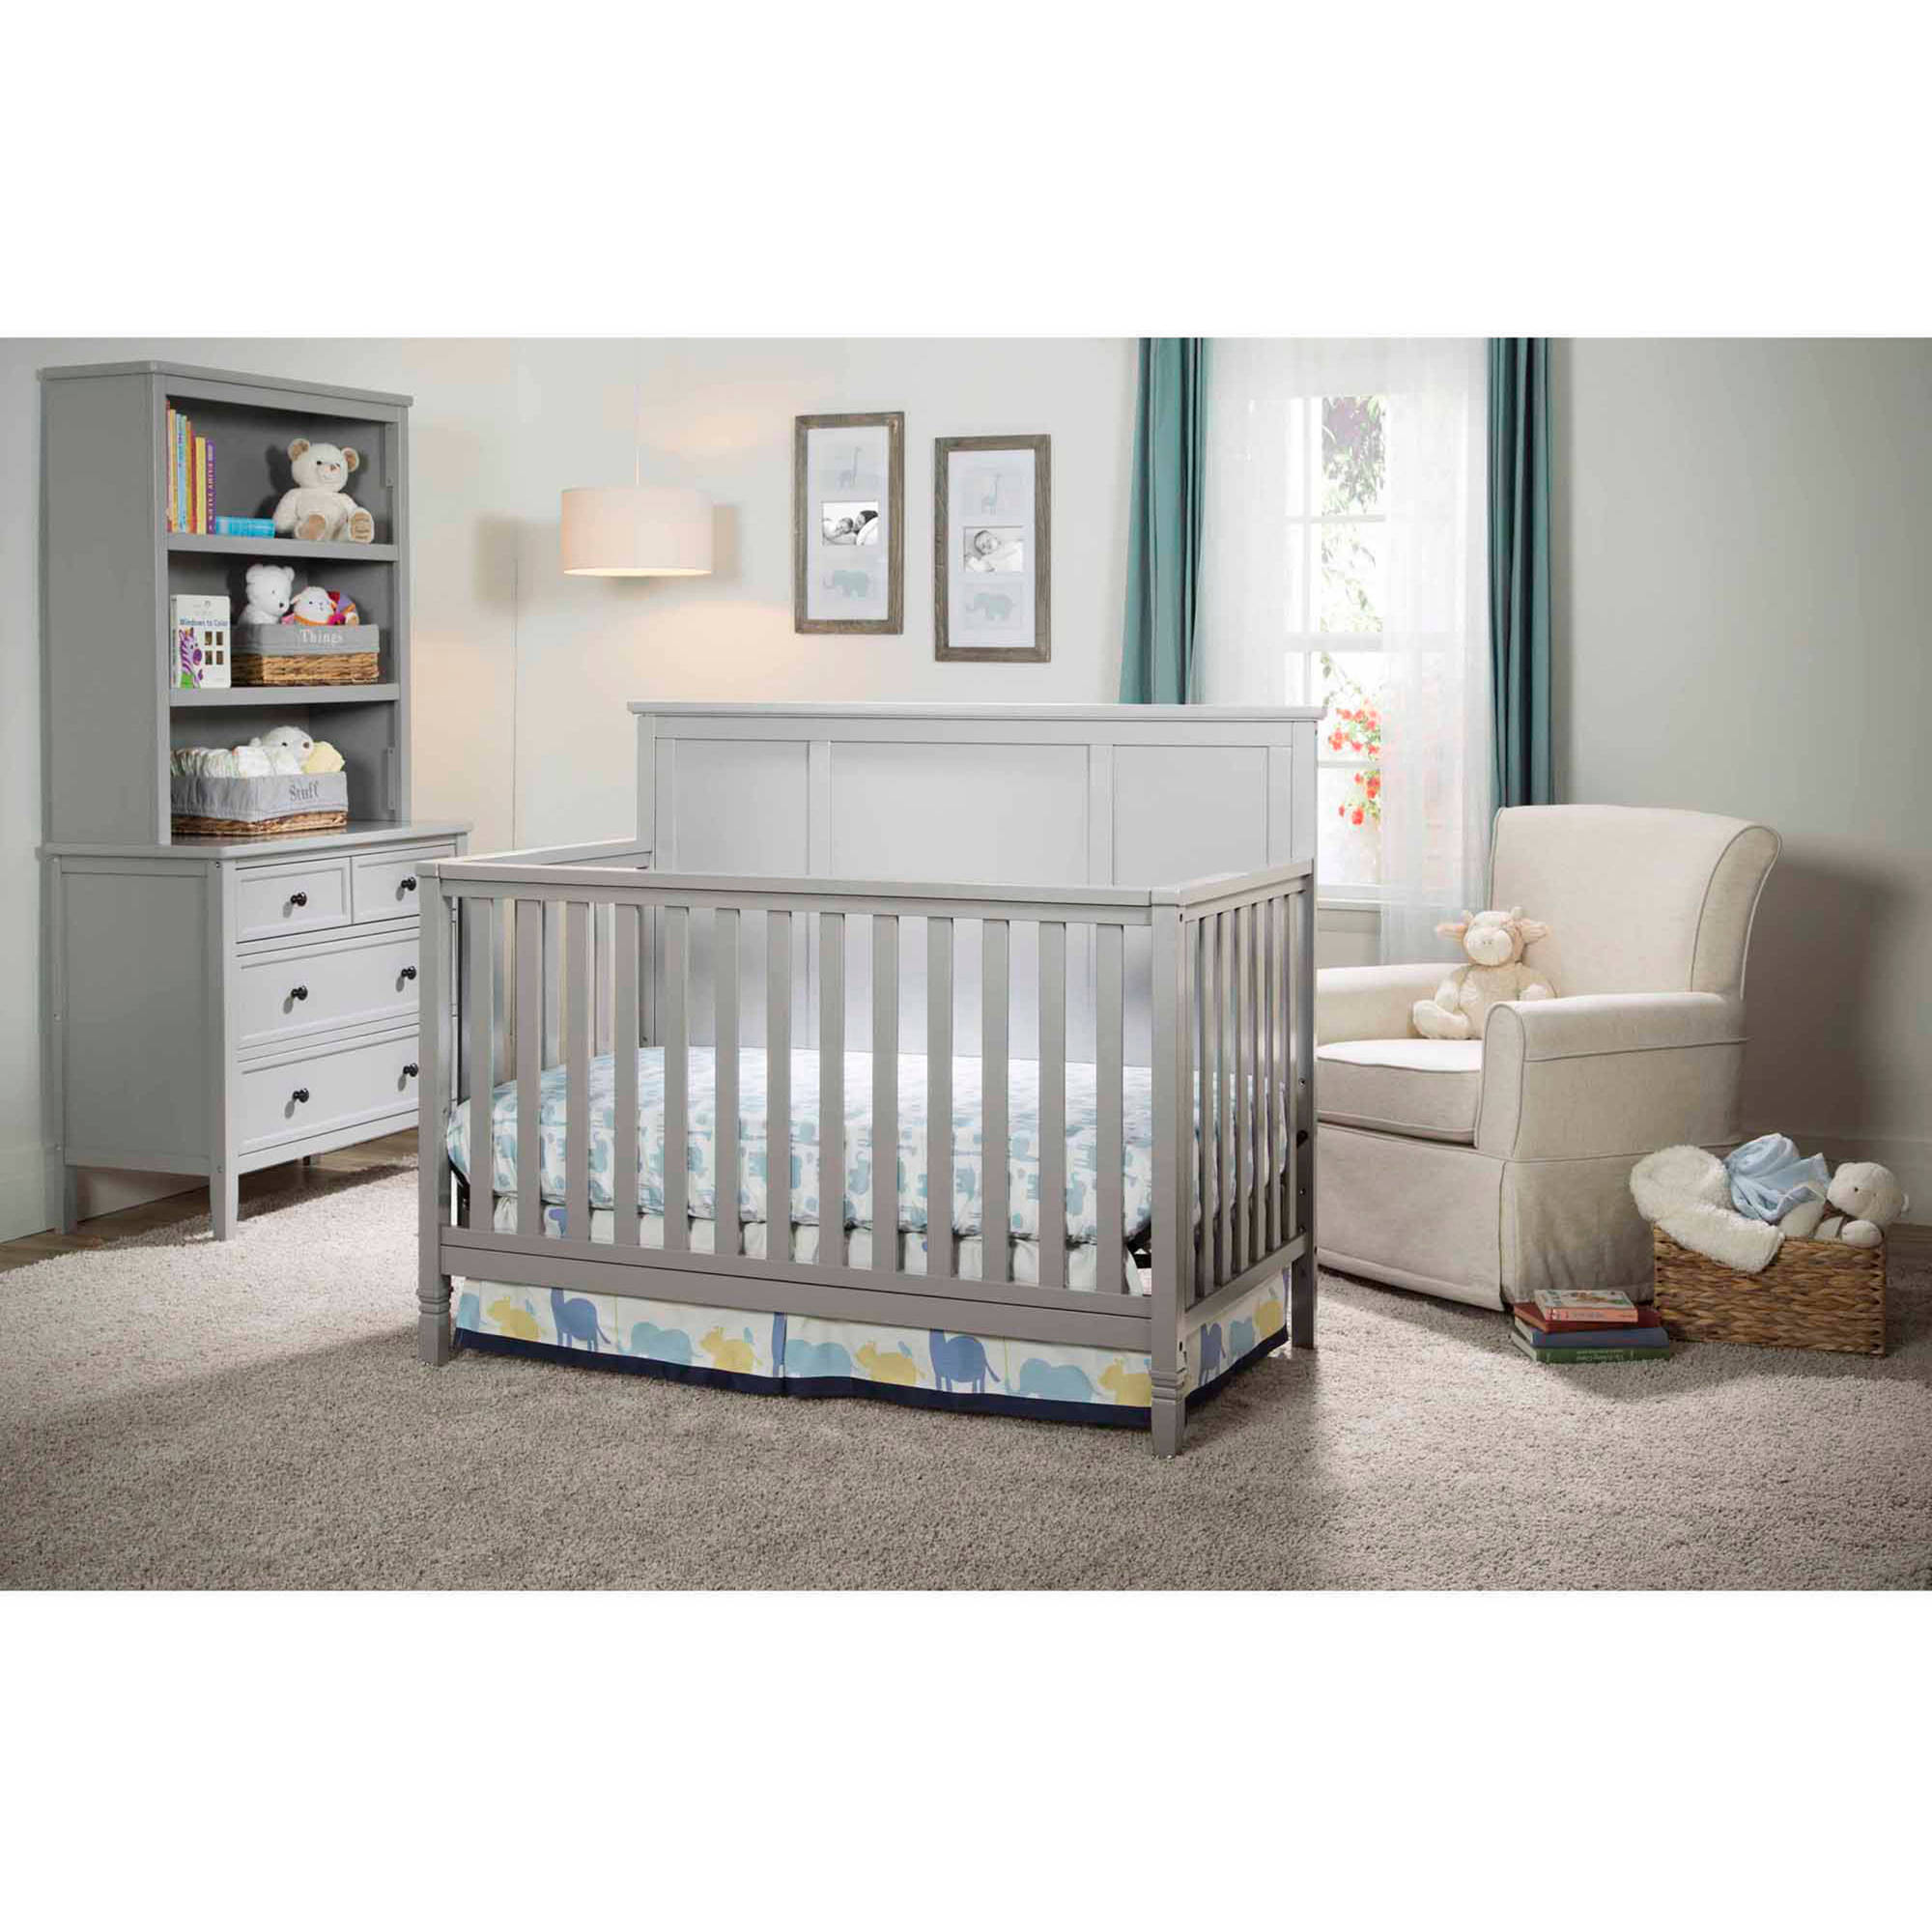 delta children epic in convertible crib gray  walmartcom -